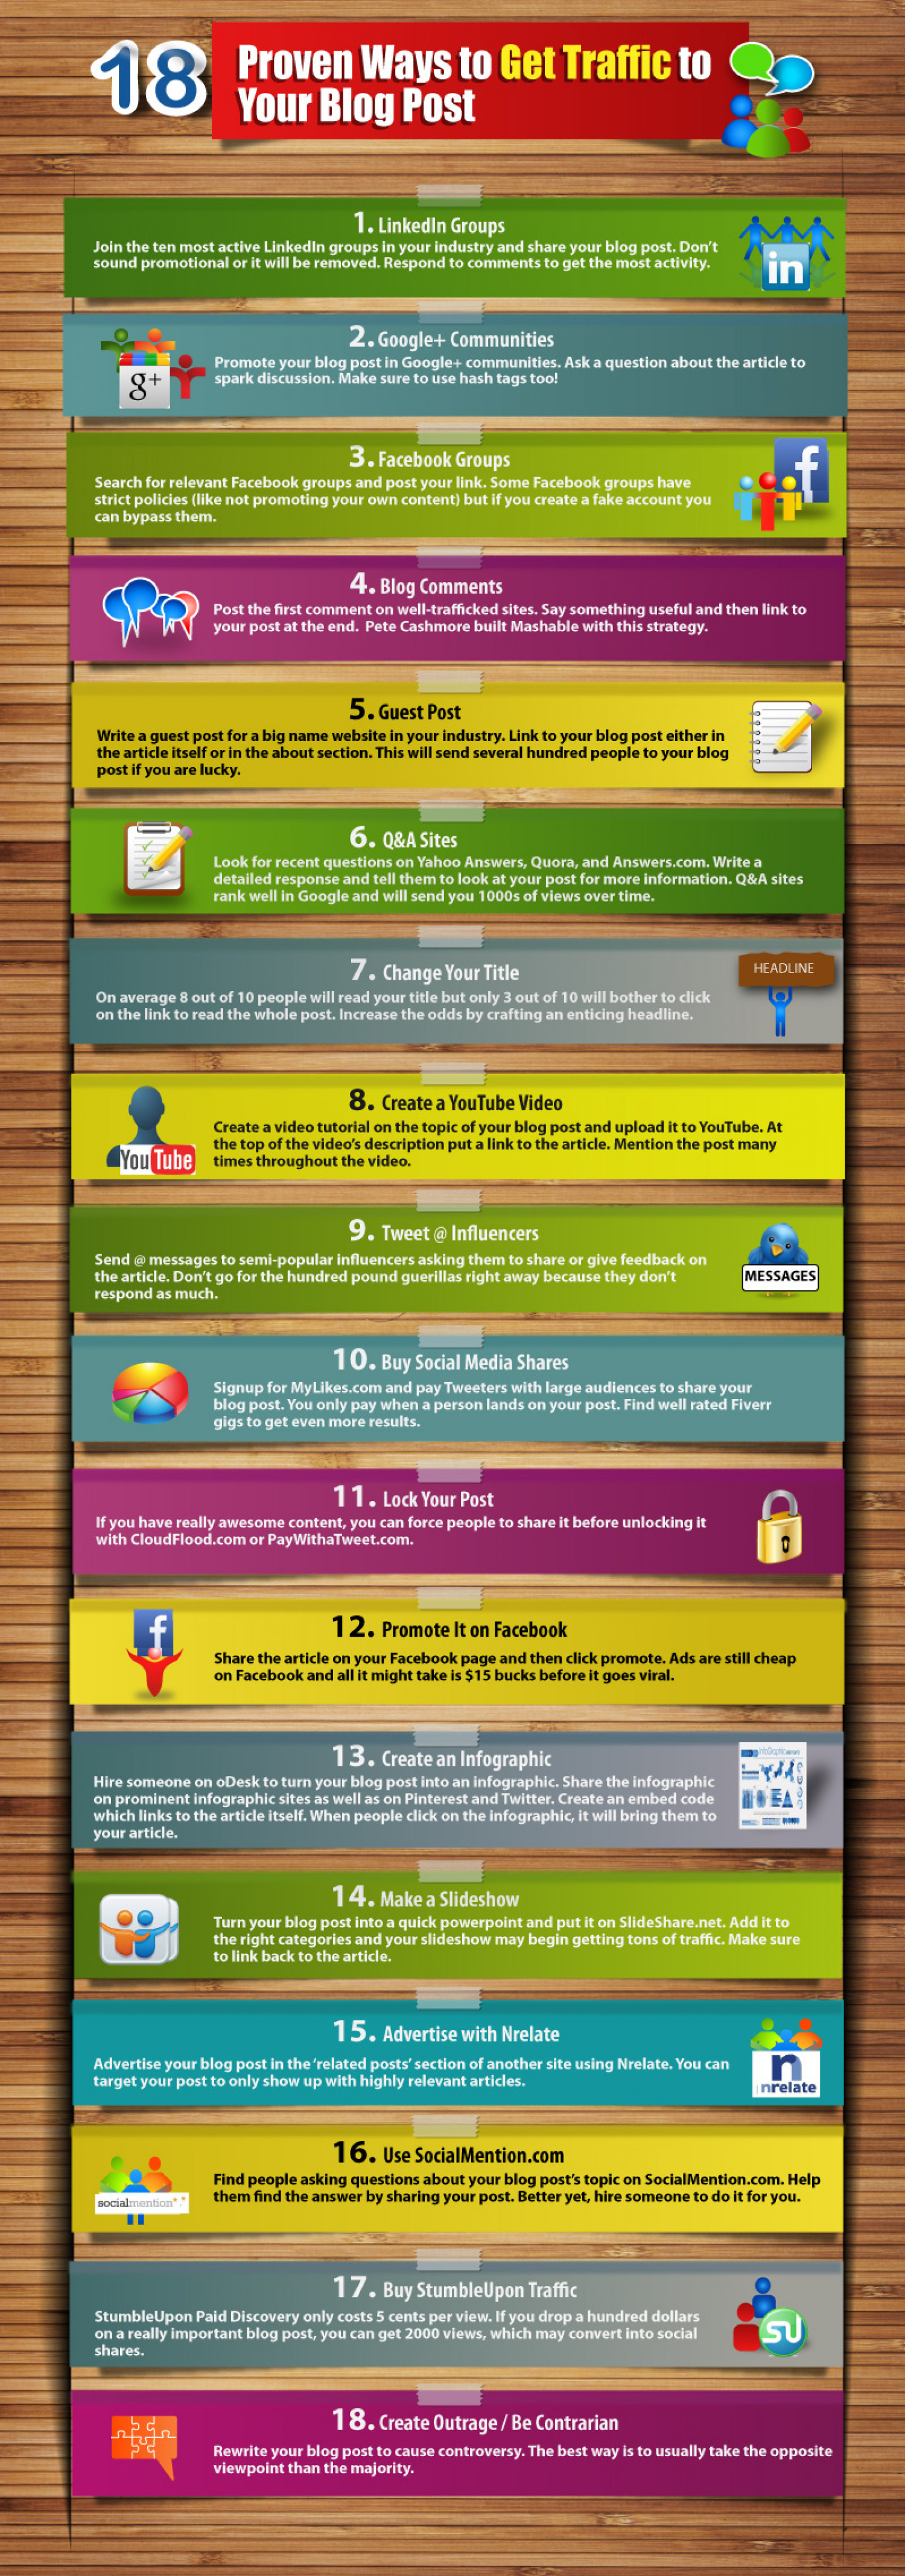 18 Proven Ways to Get Traffic to Your Blog Posst Infographic